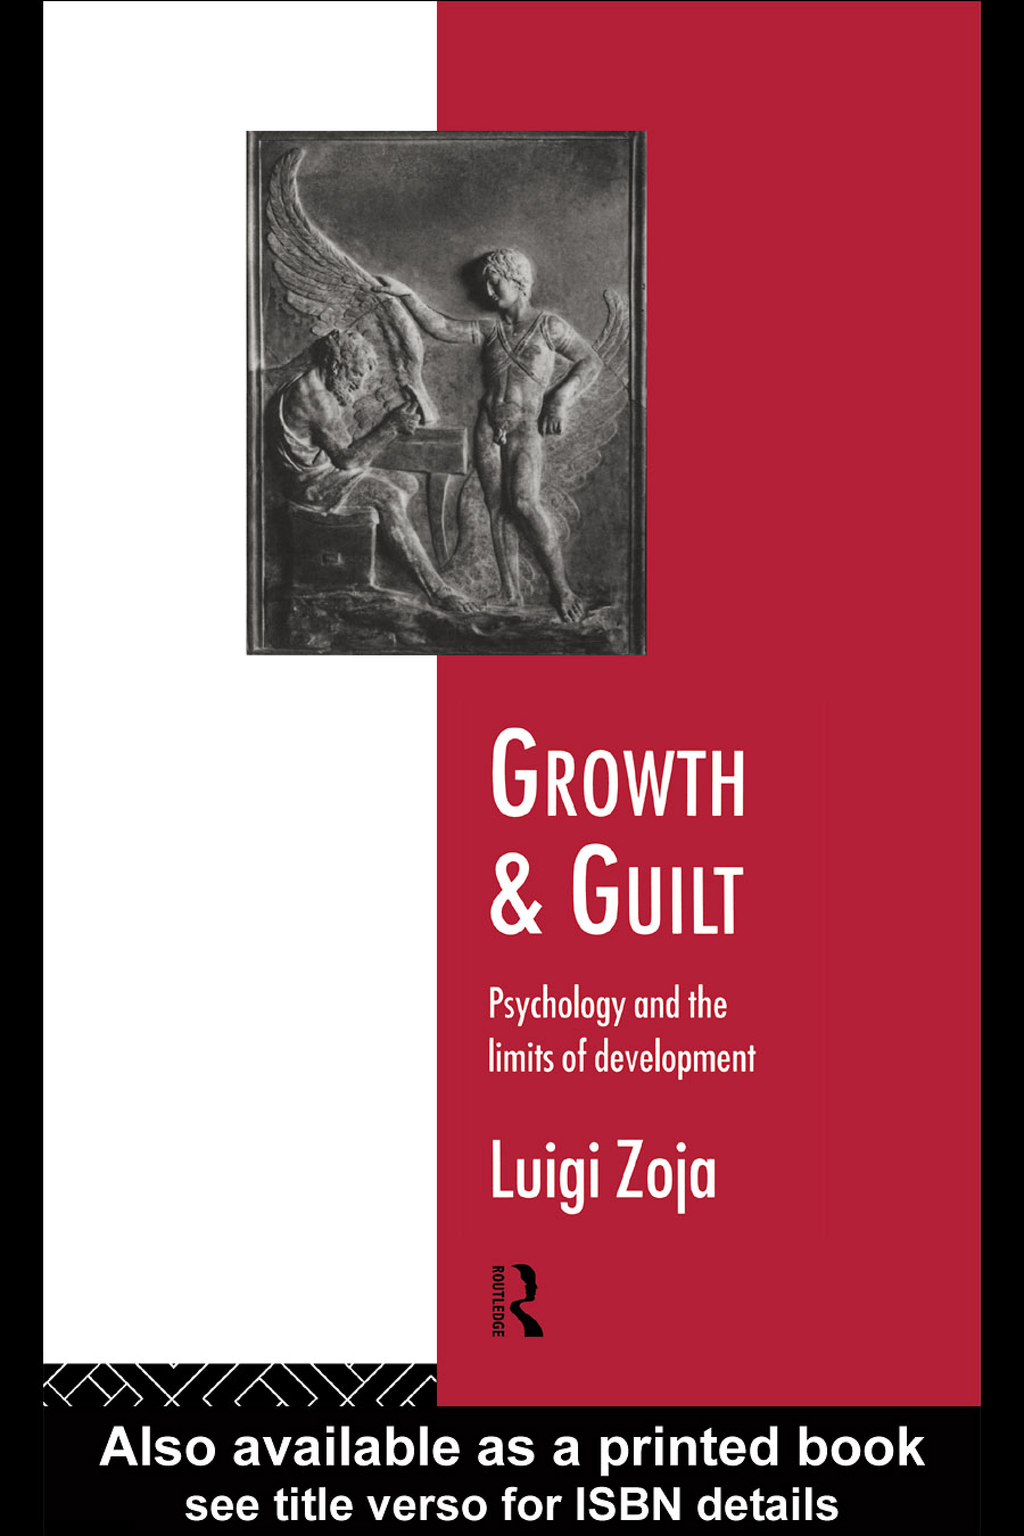 Growth and Guilt Psychology and the Limits of Development